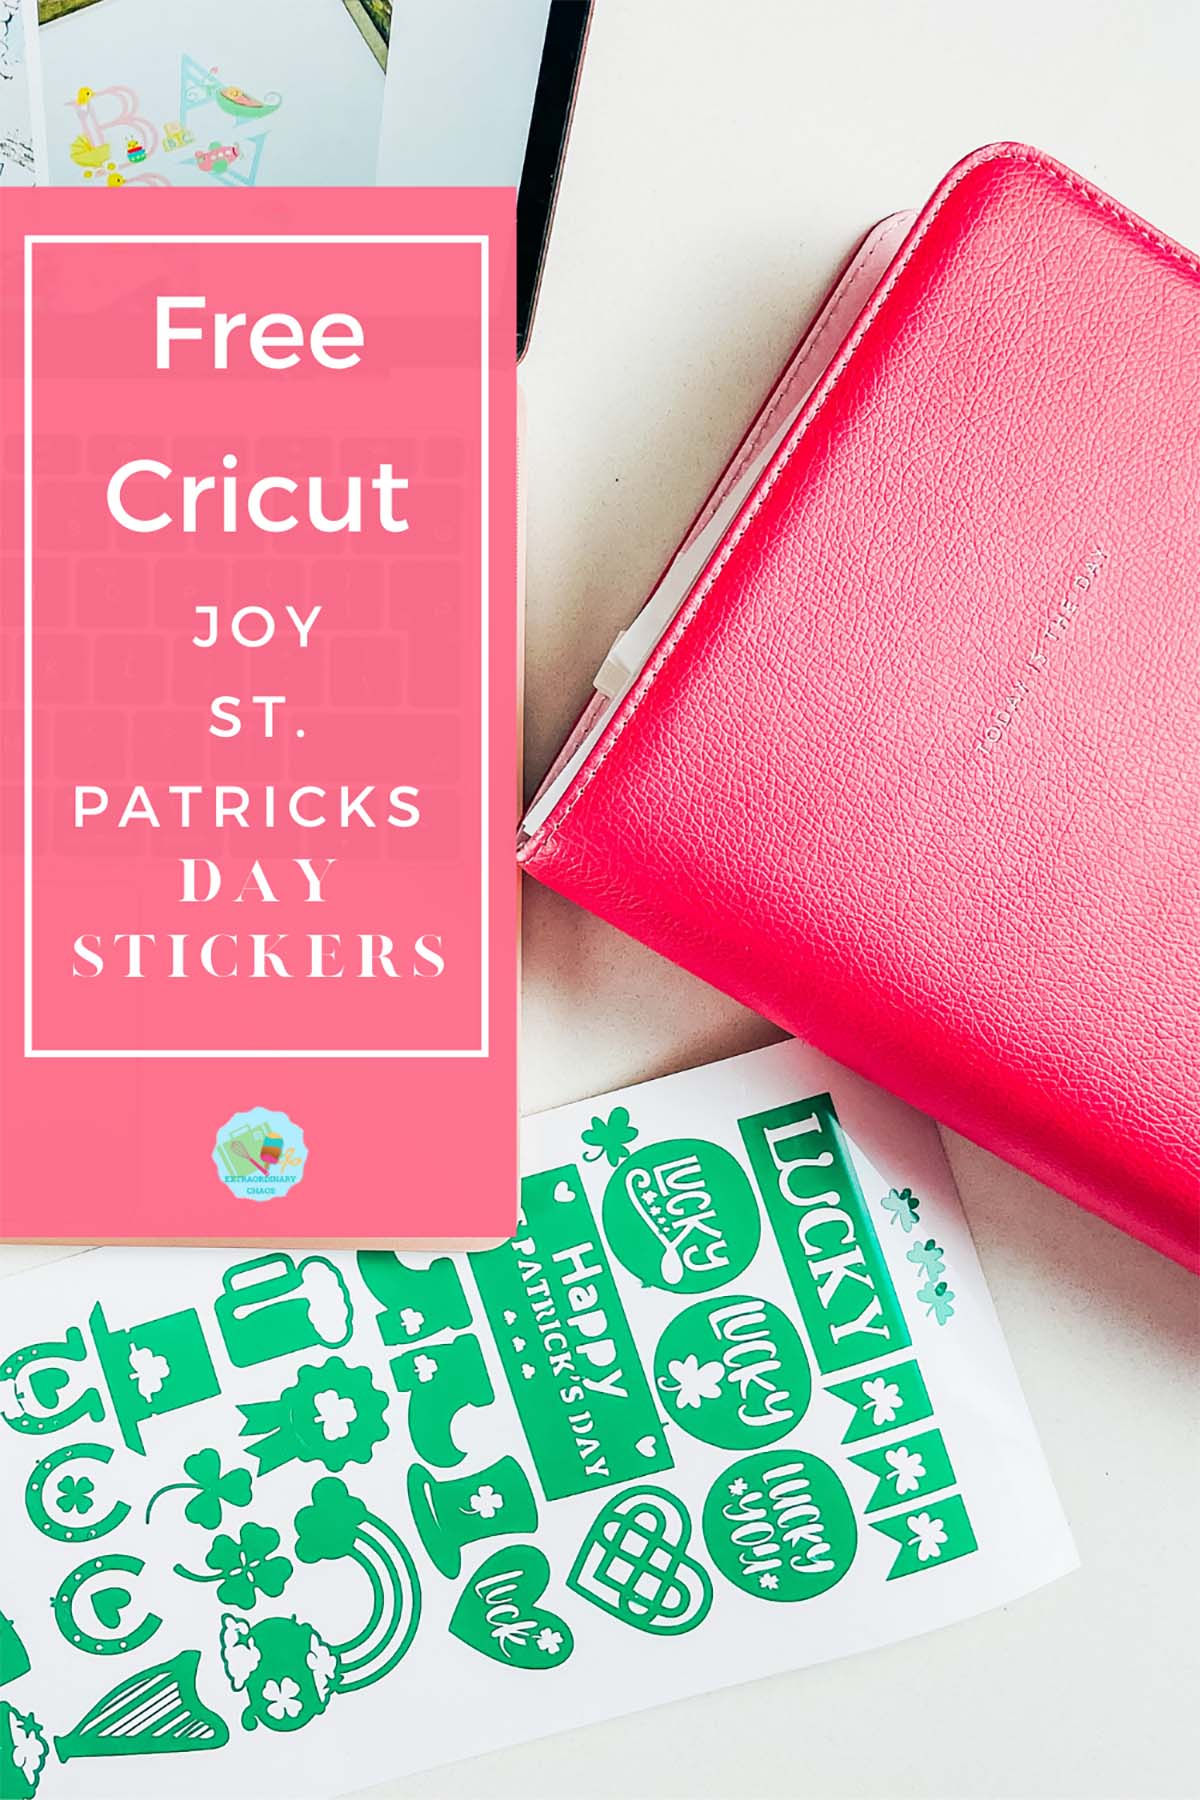 Free download for a Cricut Joy St.Patricks Day Stickers